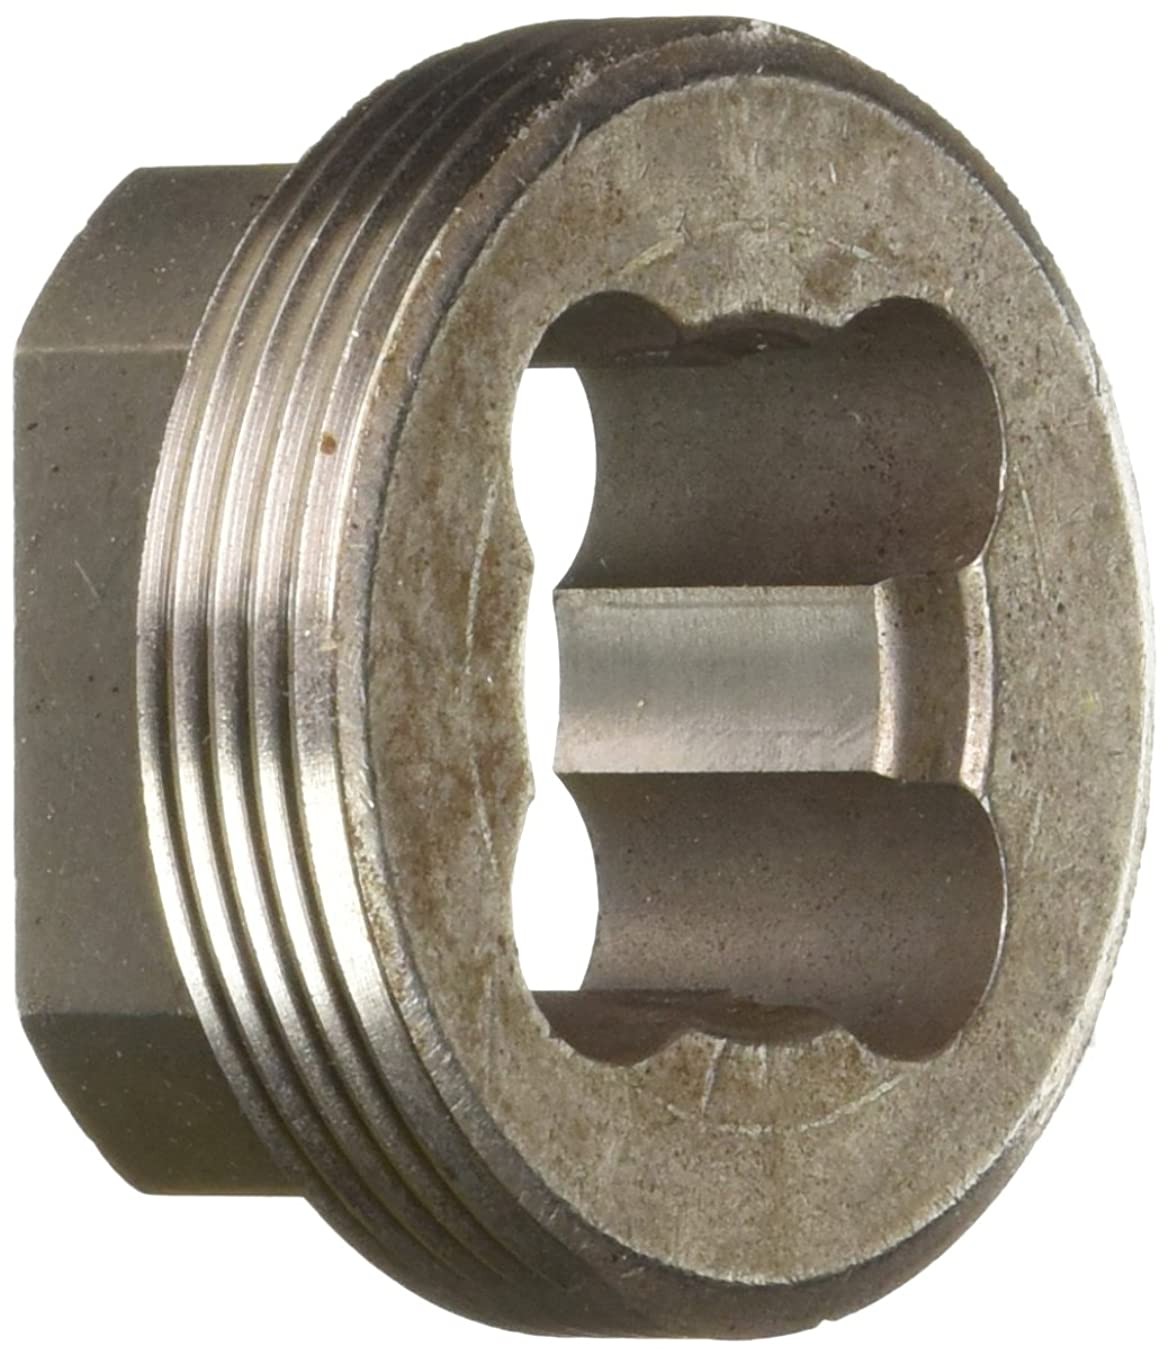 Cle-Line C66751 Style 0552 Quick-Set Guide for Two-Piece Die, 1 Size